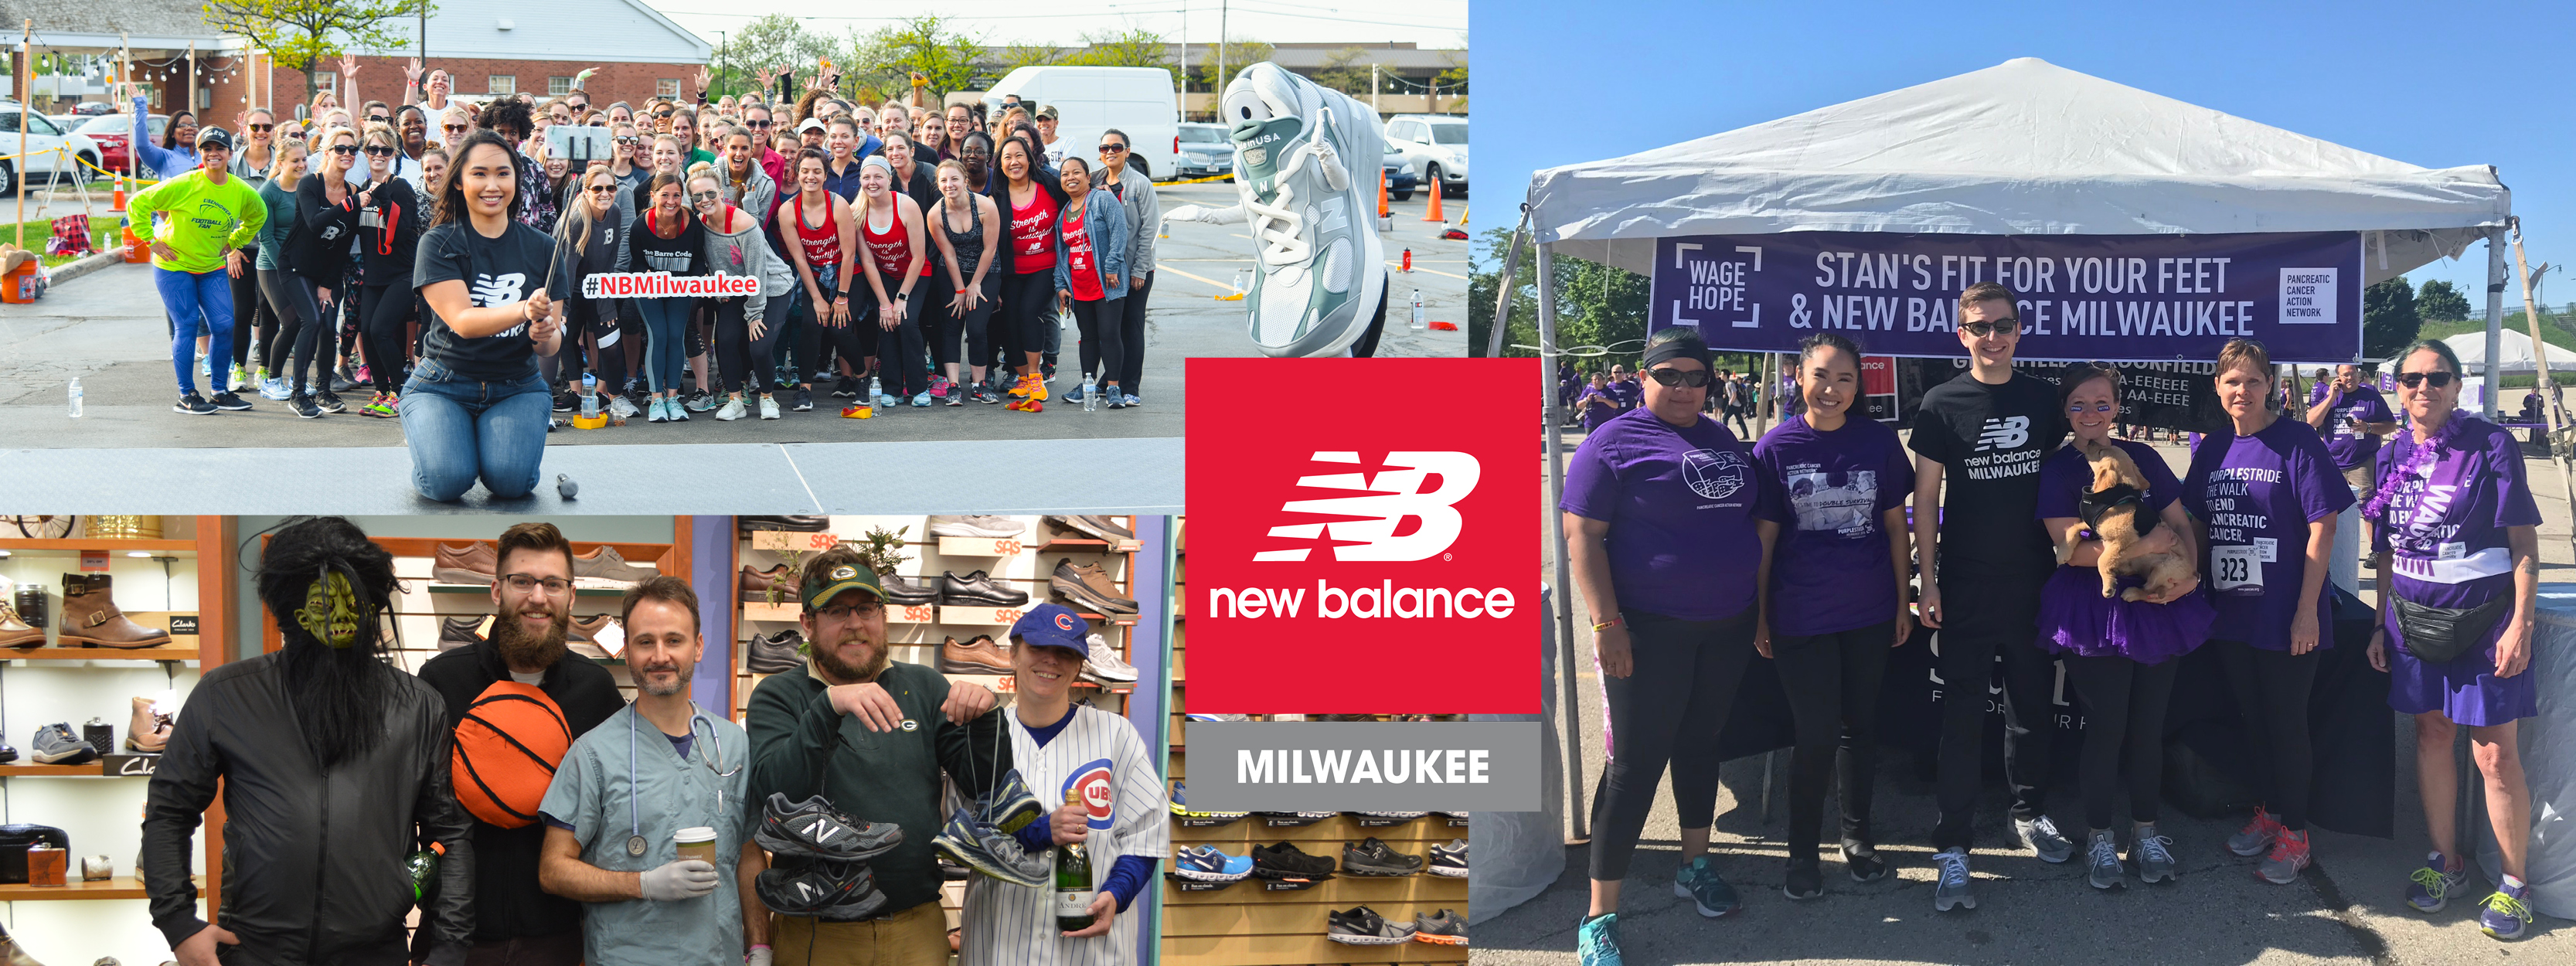 bd3052f73cda7 New Balance Milwaukee - Stan's Fit For Your Feet